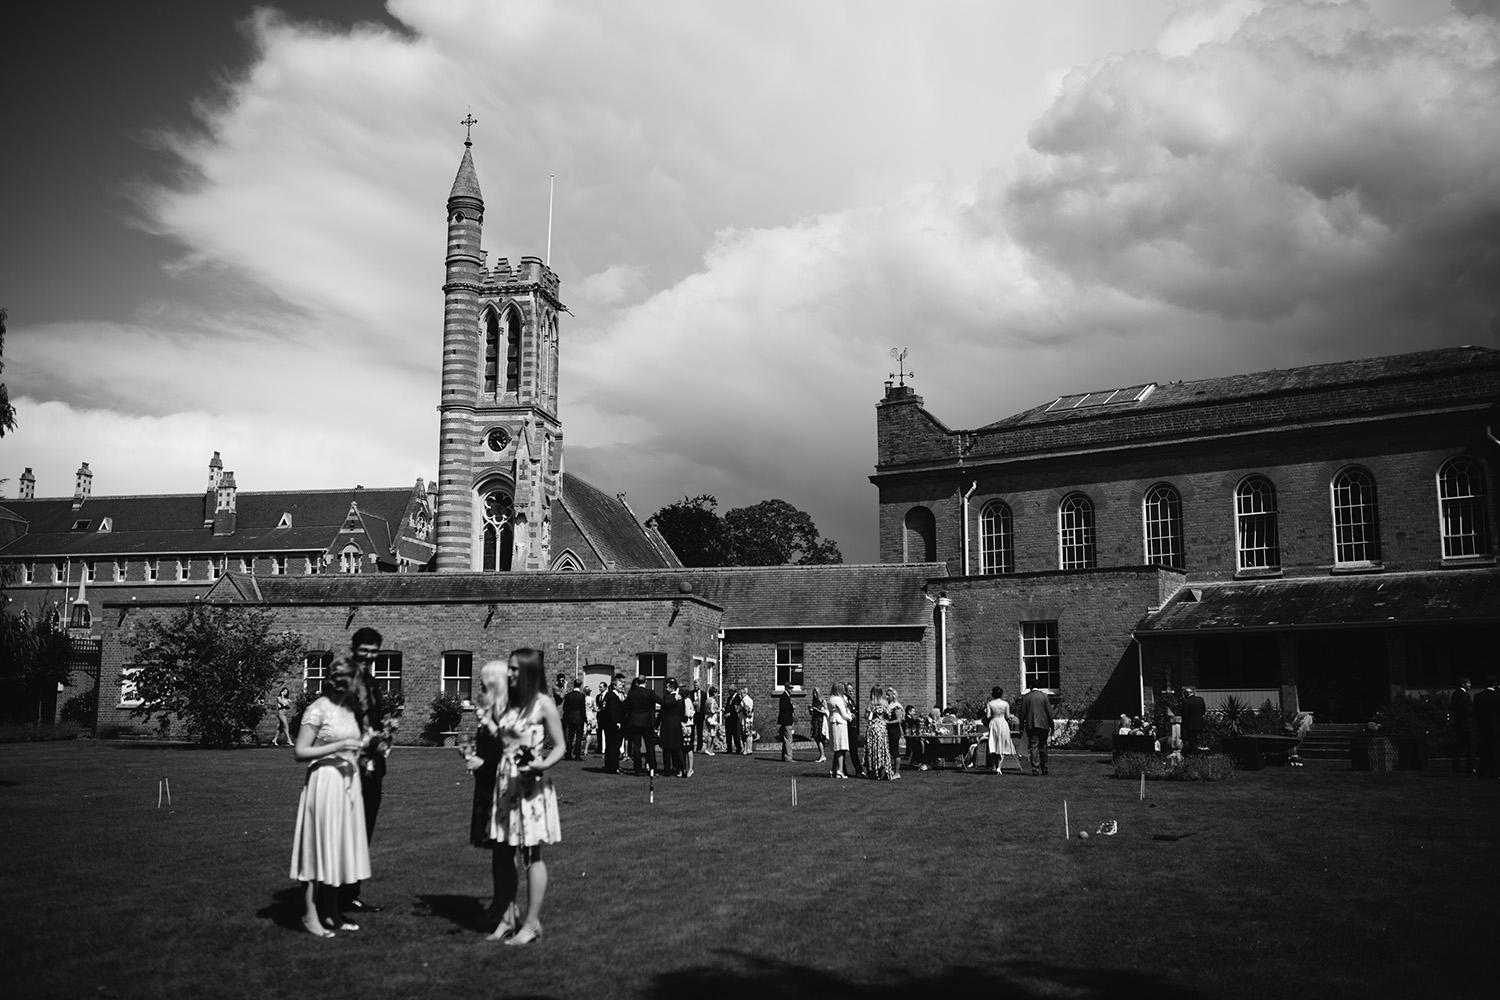 stanbrook-abbey-wedding-worcester-058.jpg